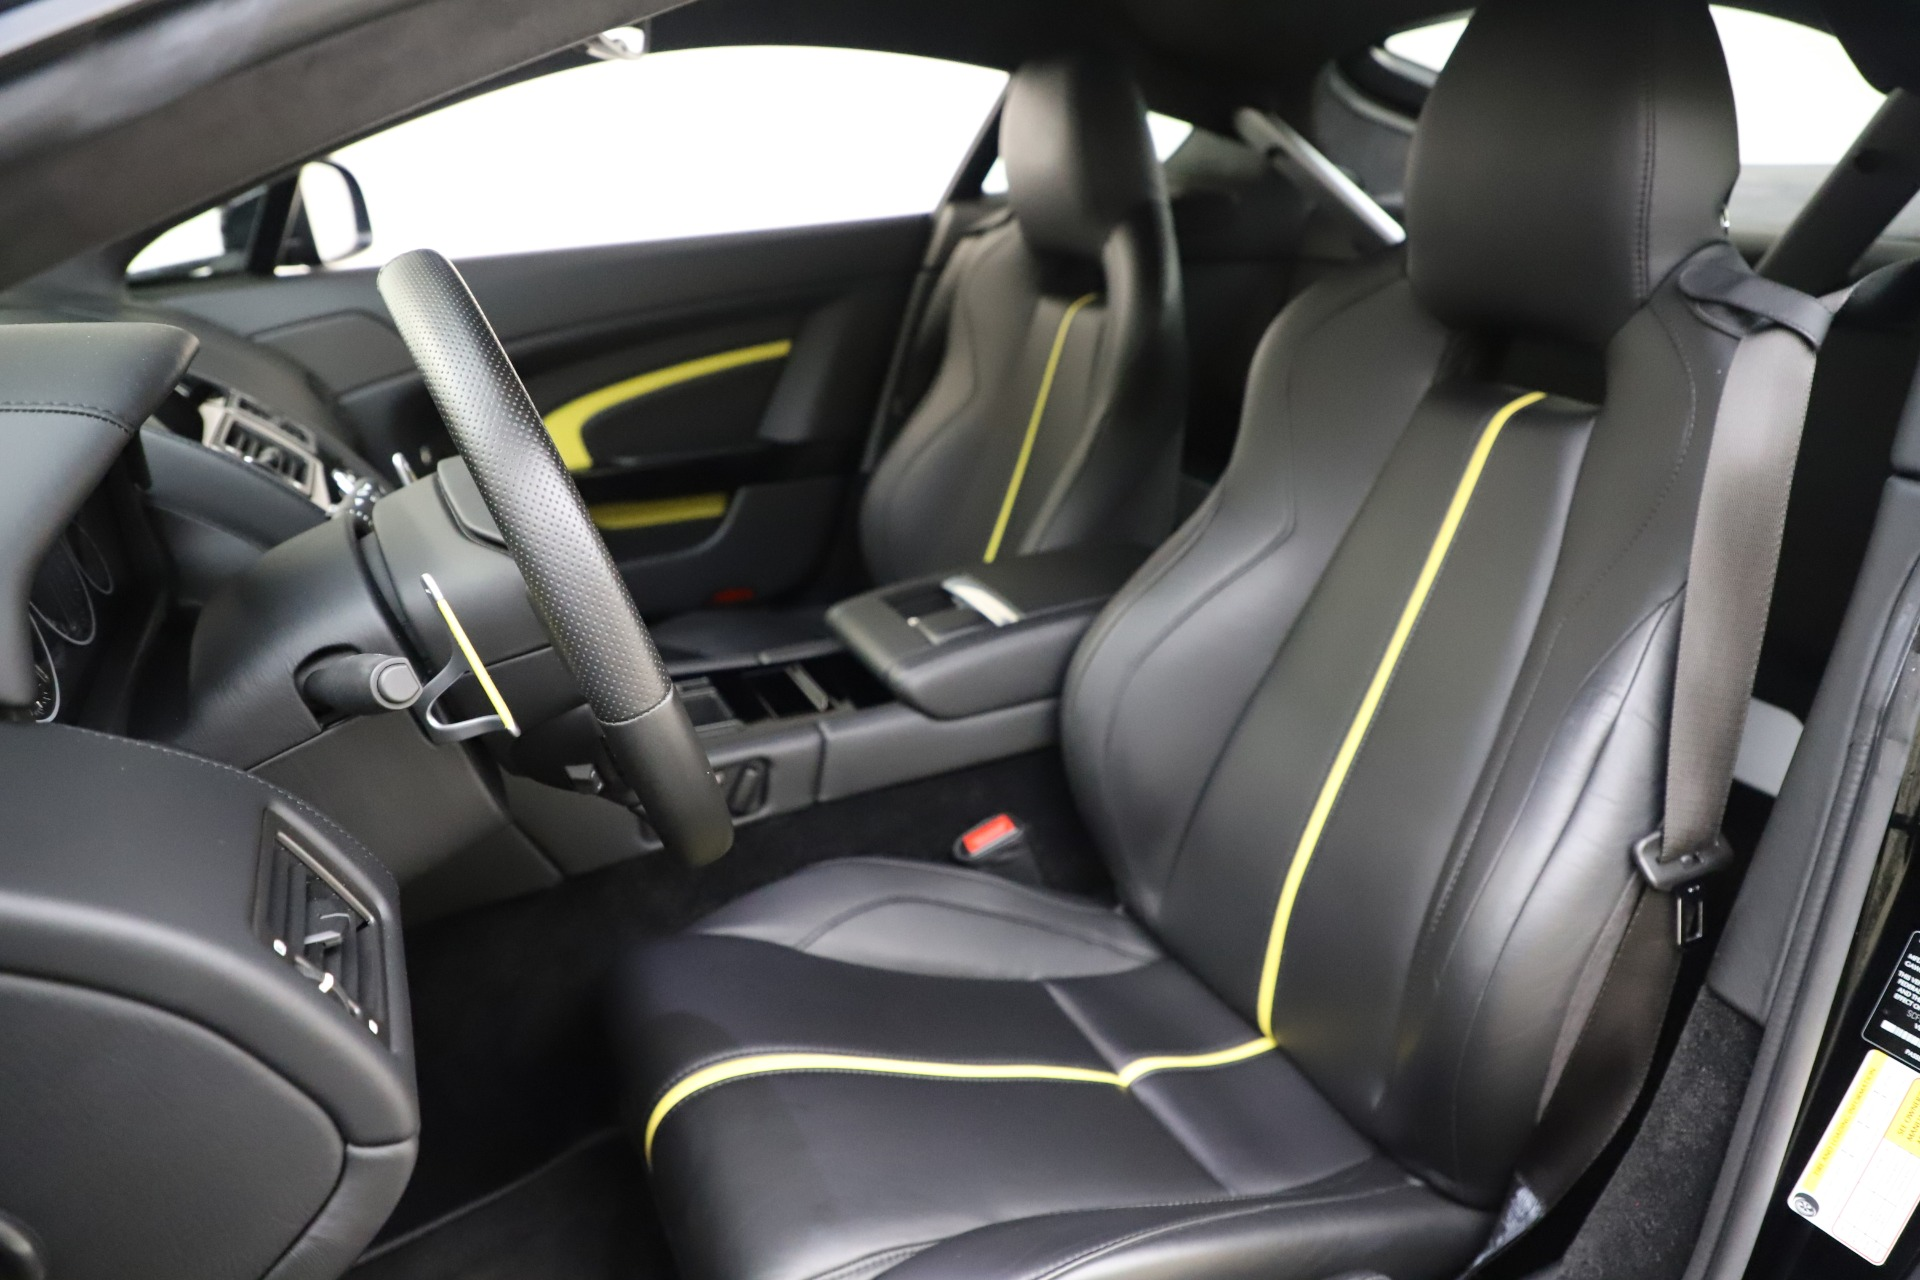 Used 2015 Aston Martin V12 Vantage S Coupe For Sale In Westport, CT 3513_p14